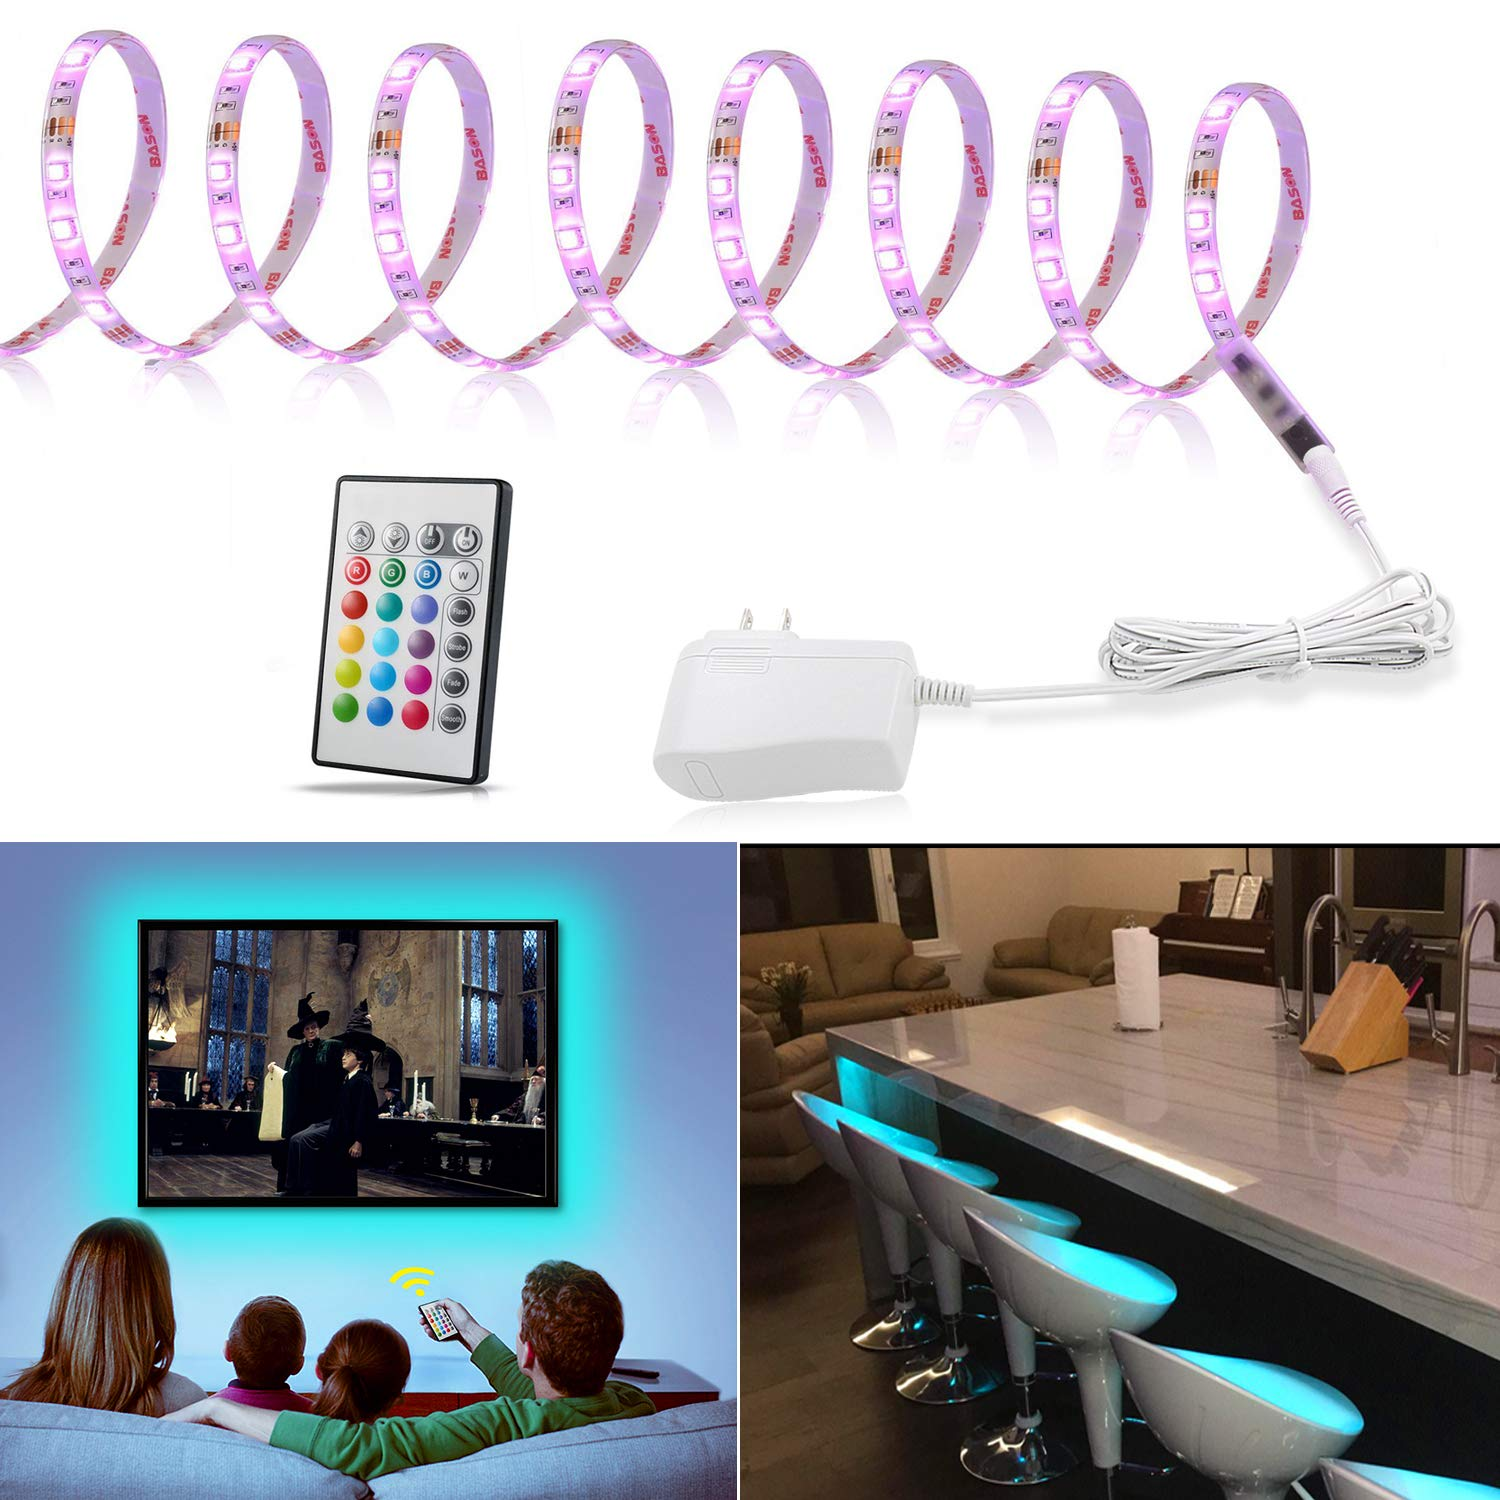 LED Strip Light 9.8ft, TV Bias Lighting for 50 to 75 inch HDTV, Multicolor Light Strip with Remote and 12V Adapter, RGB Backlight for Under Cabinet,Shelf,Kitchen,Home Theater, 3 Meter Color Changing